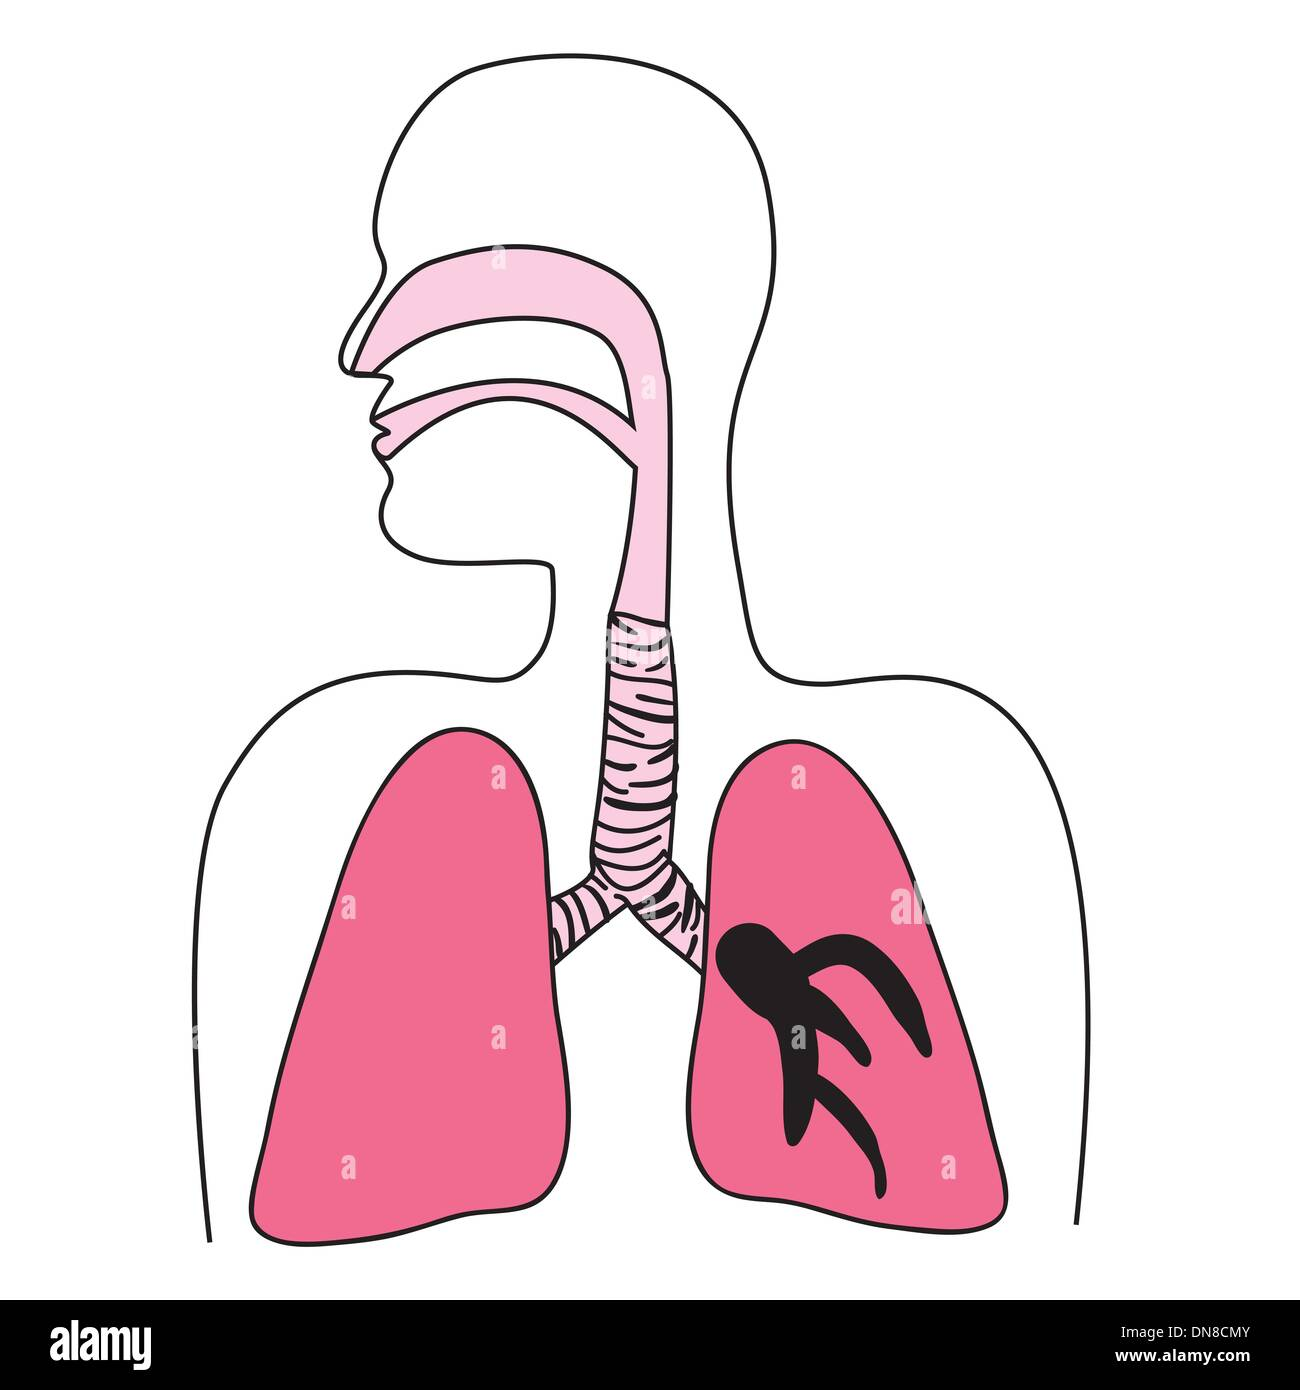 Human Respiratory System High Resolution Stock Photography And